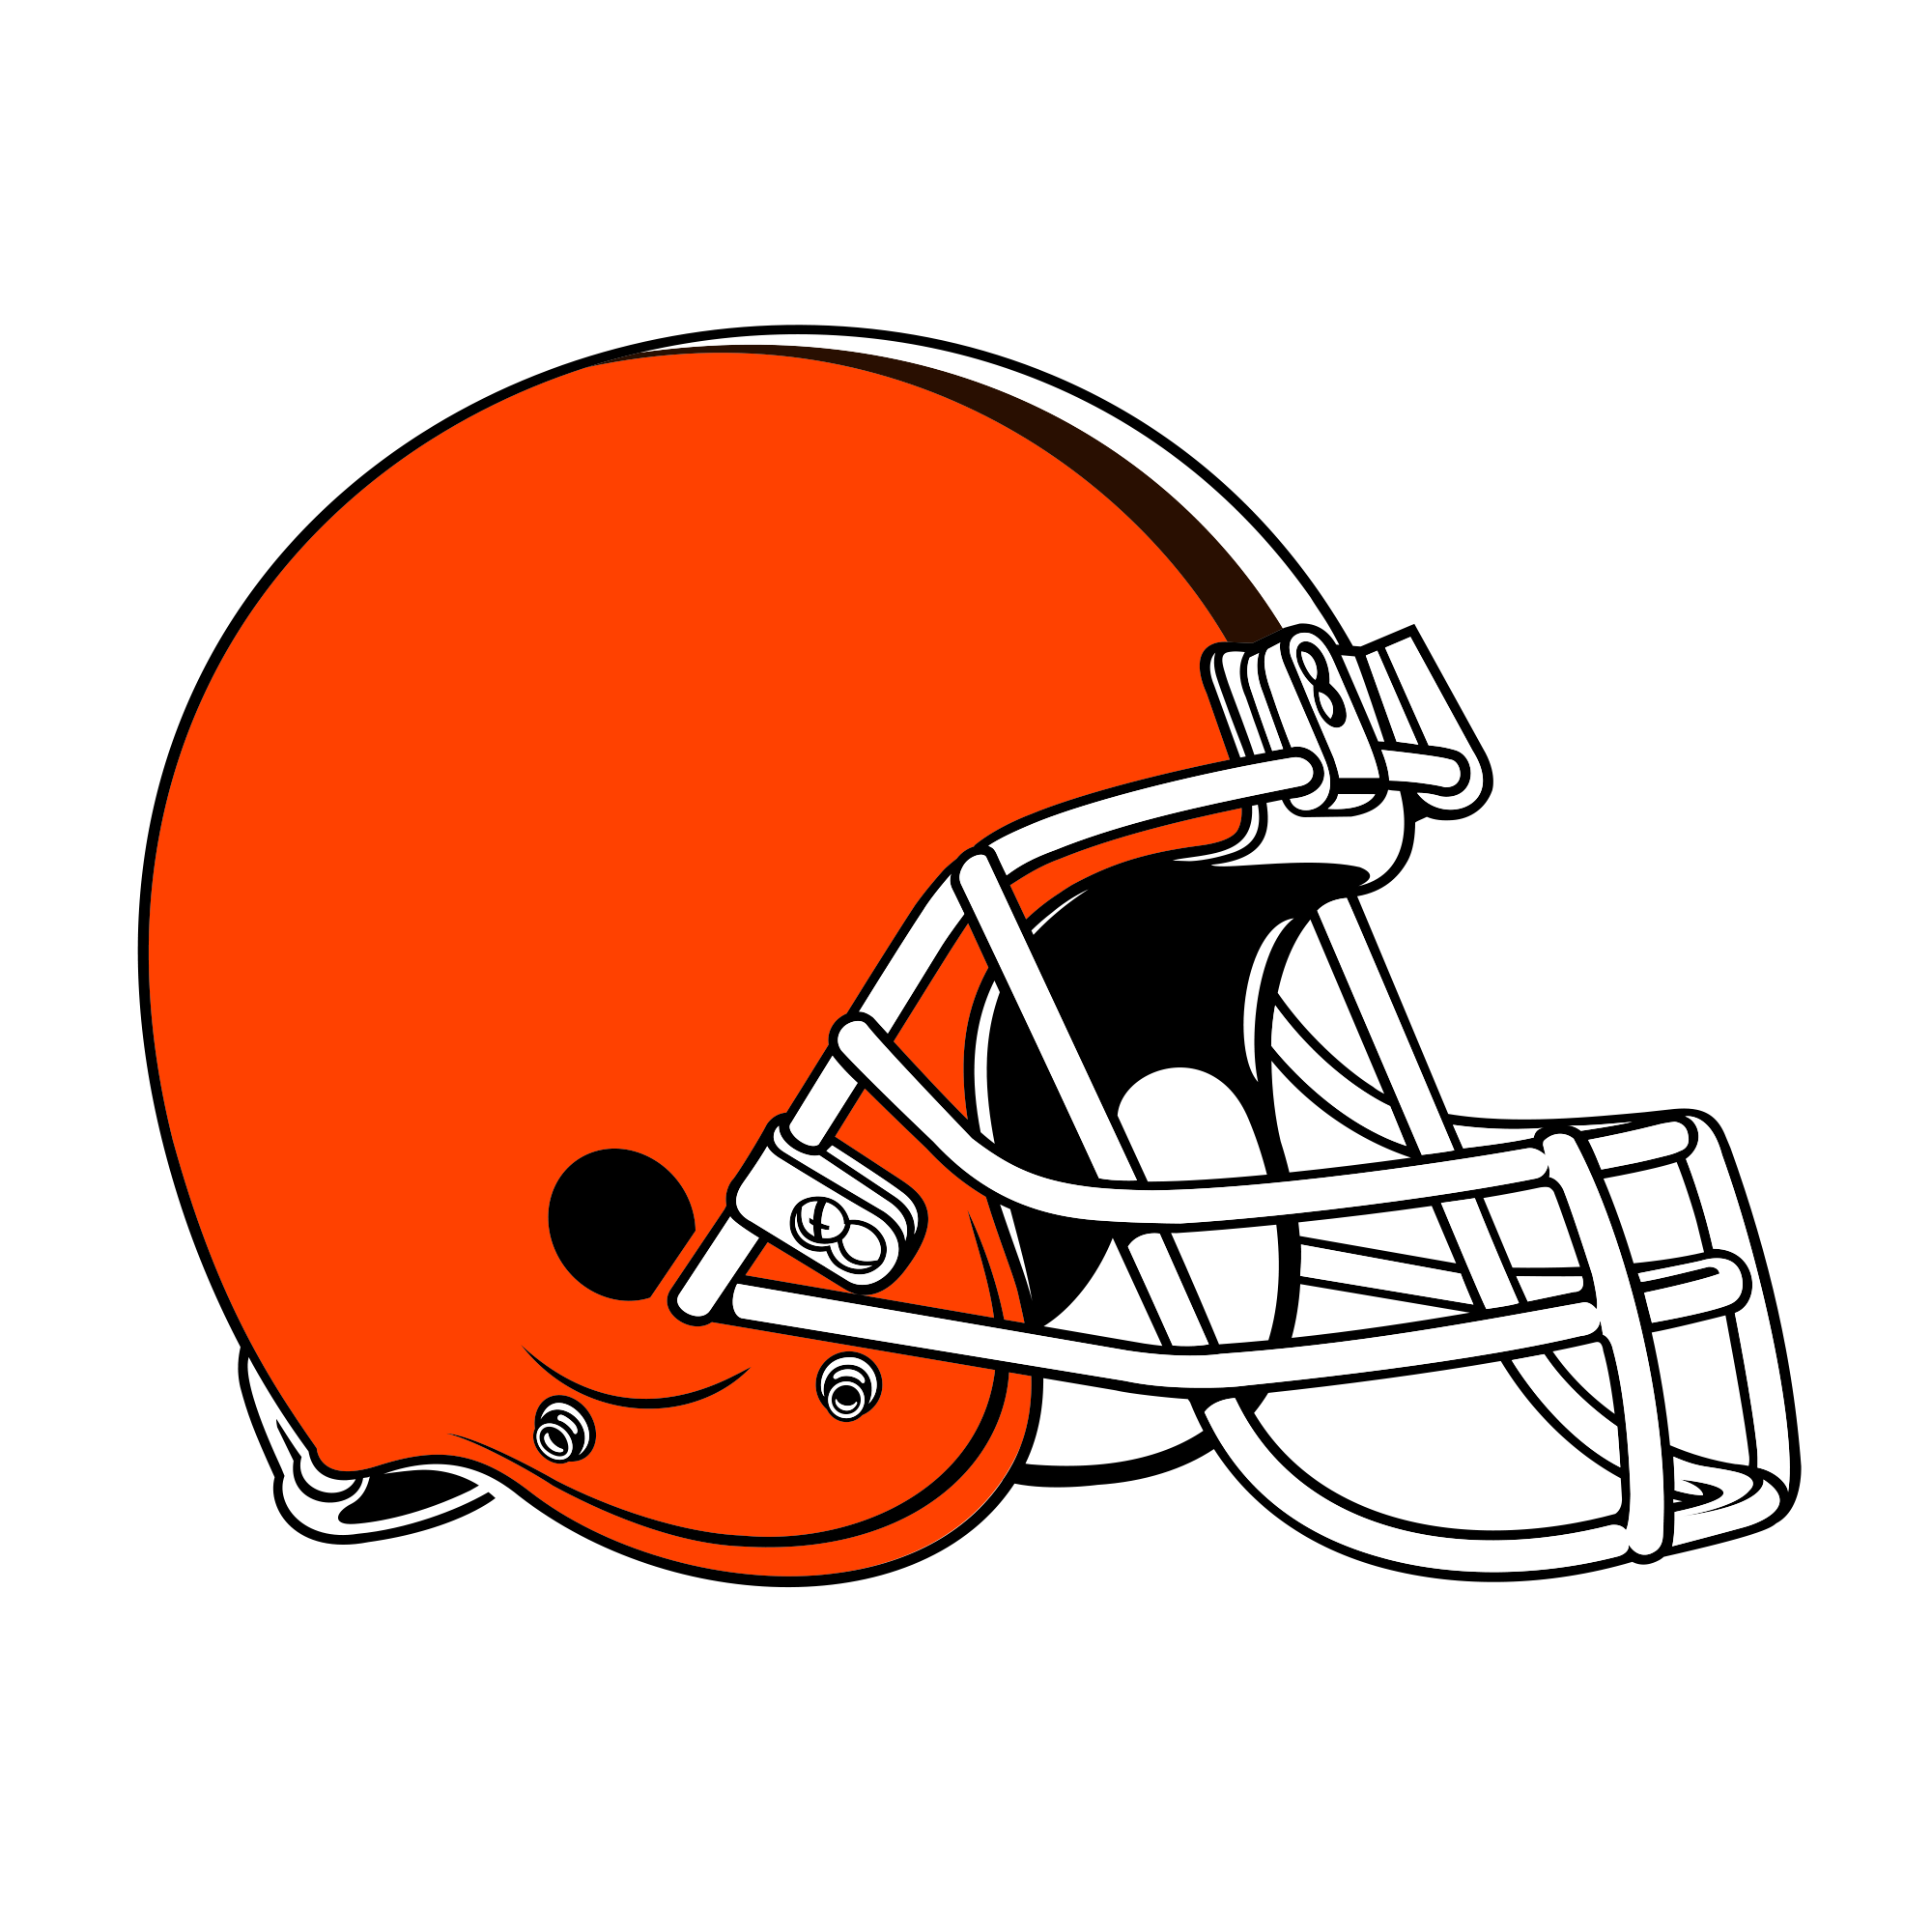 Orange football helmet clipart graphic download Seahawks start No. 1 in NFL Power Rankings - TSN.ca graphic download